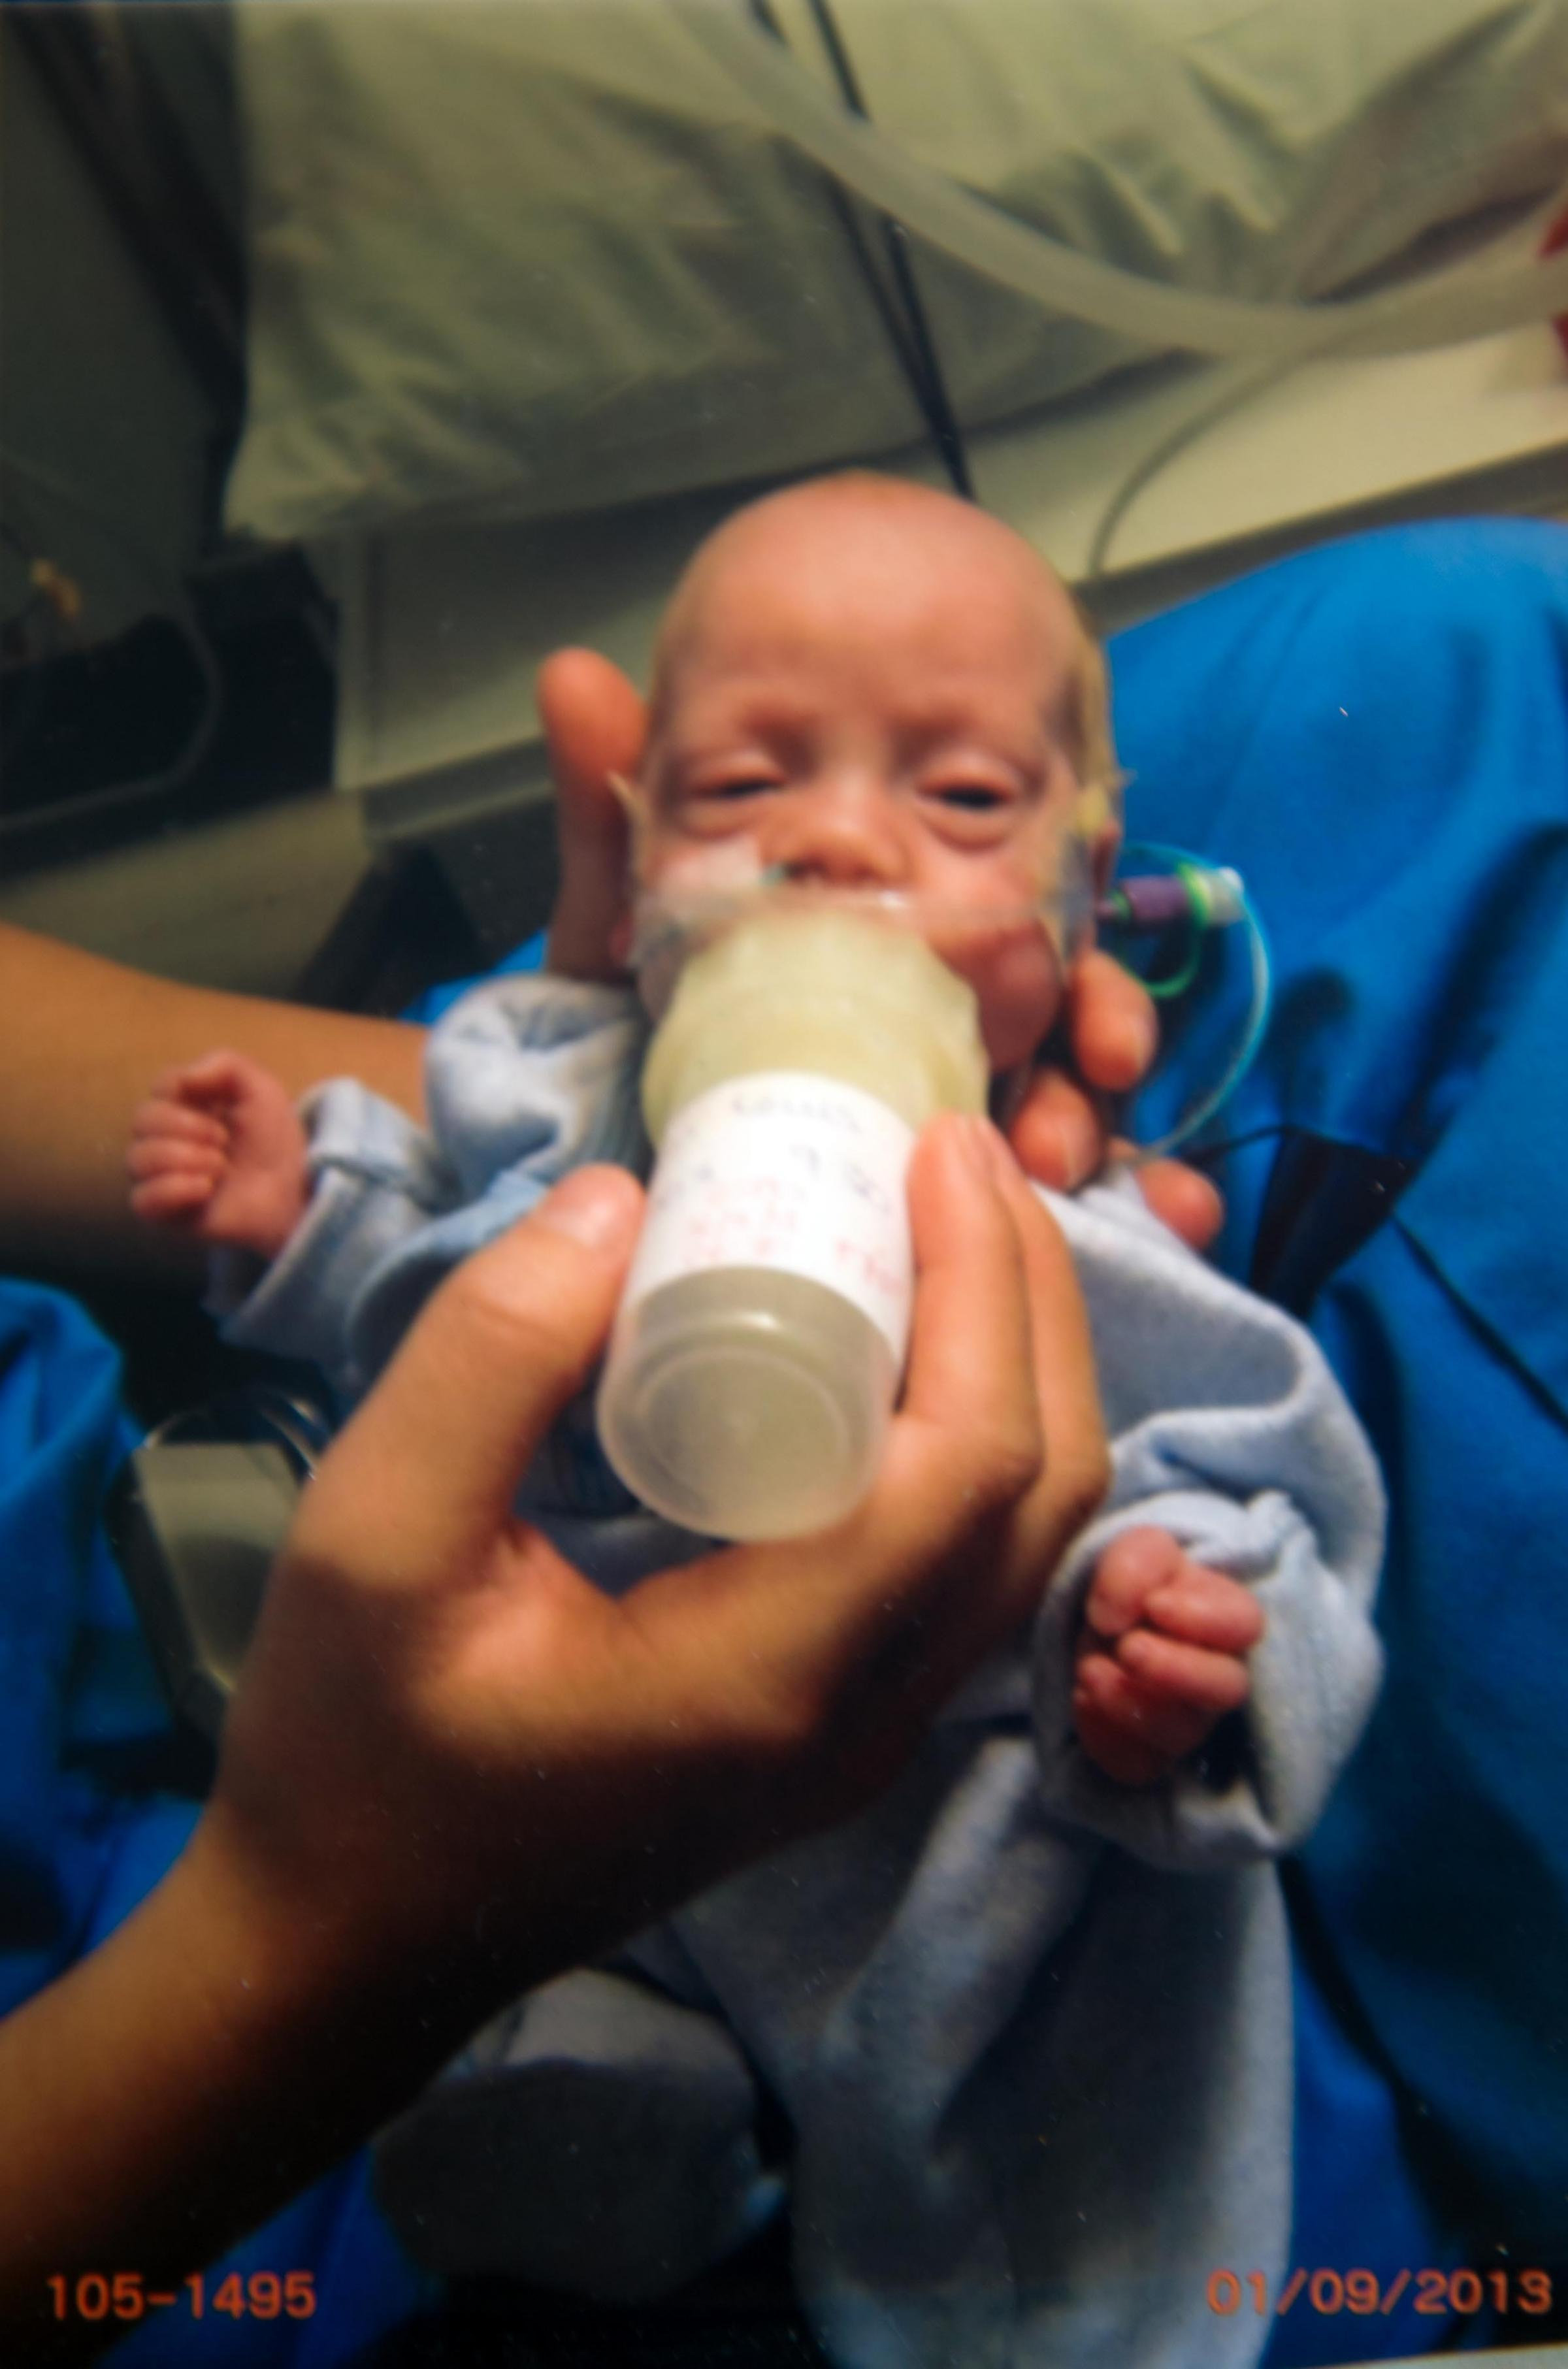 The transformation of this premature baby seems a real miracle